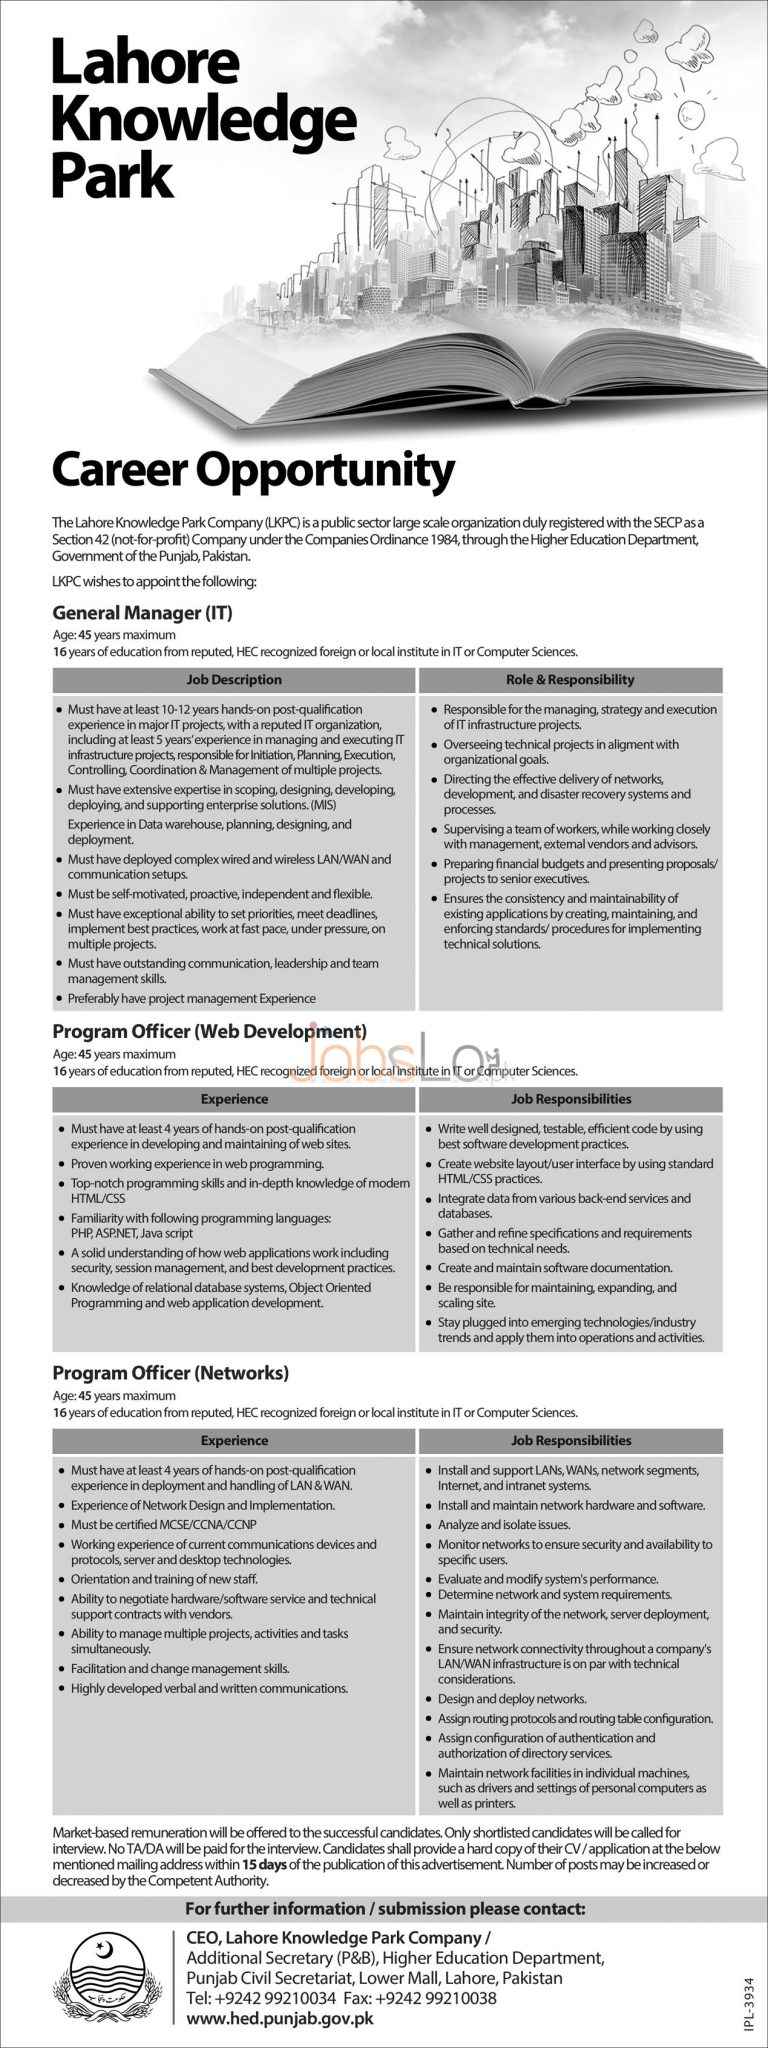 Lahore Knowledge Park Company Jobs